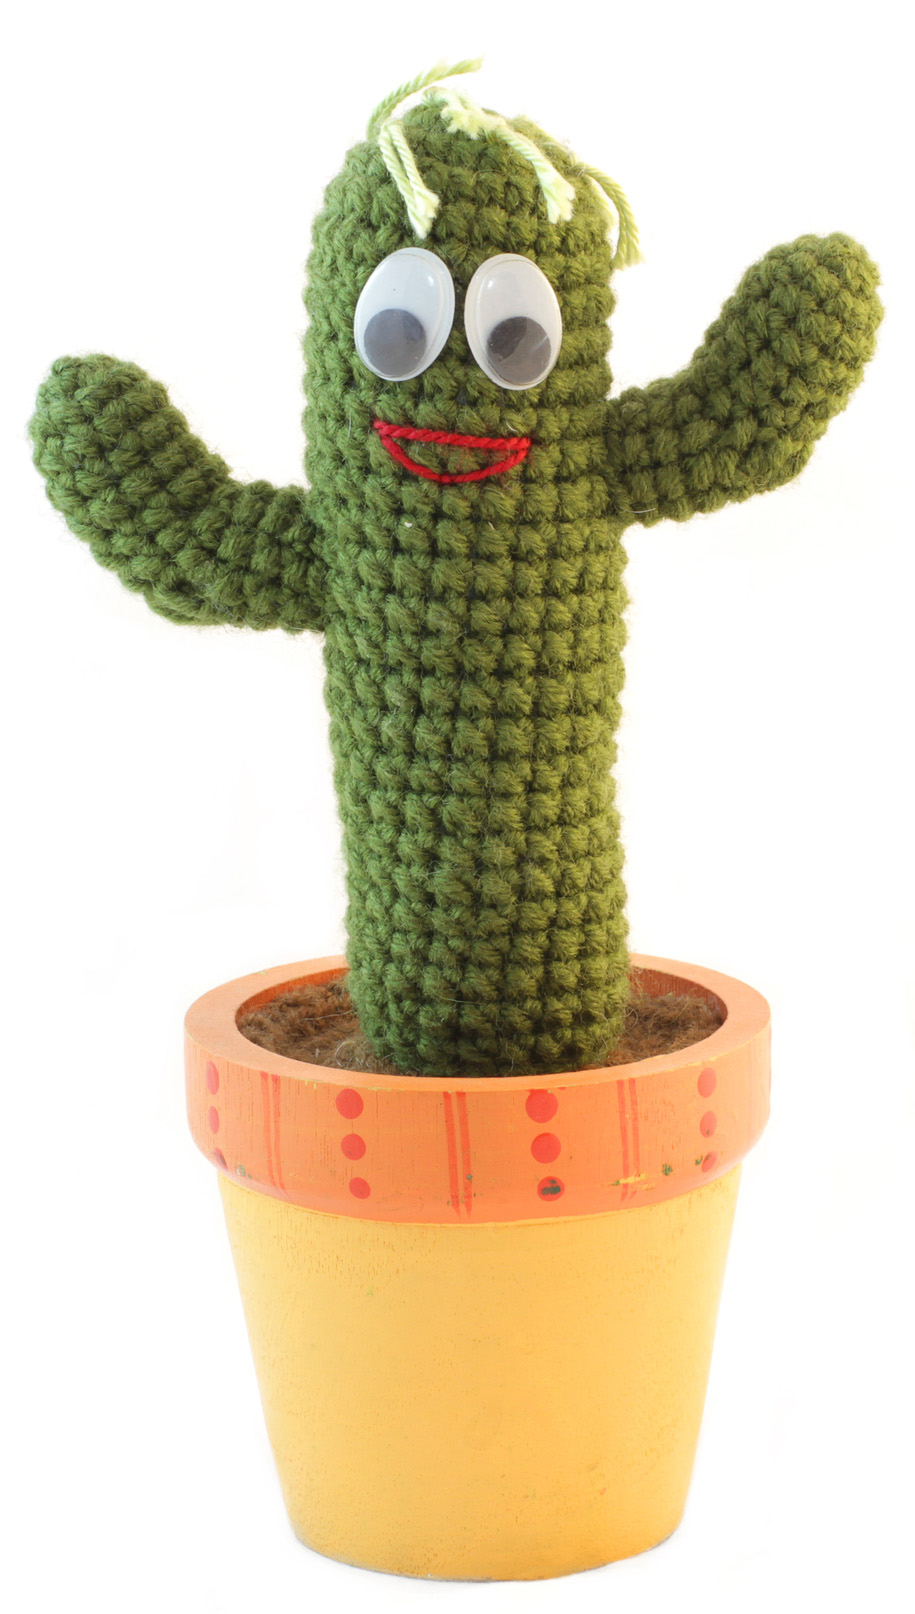 Knit Cactus Moving with Kids